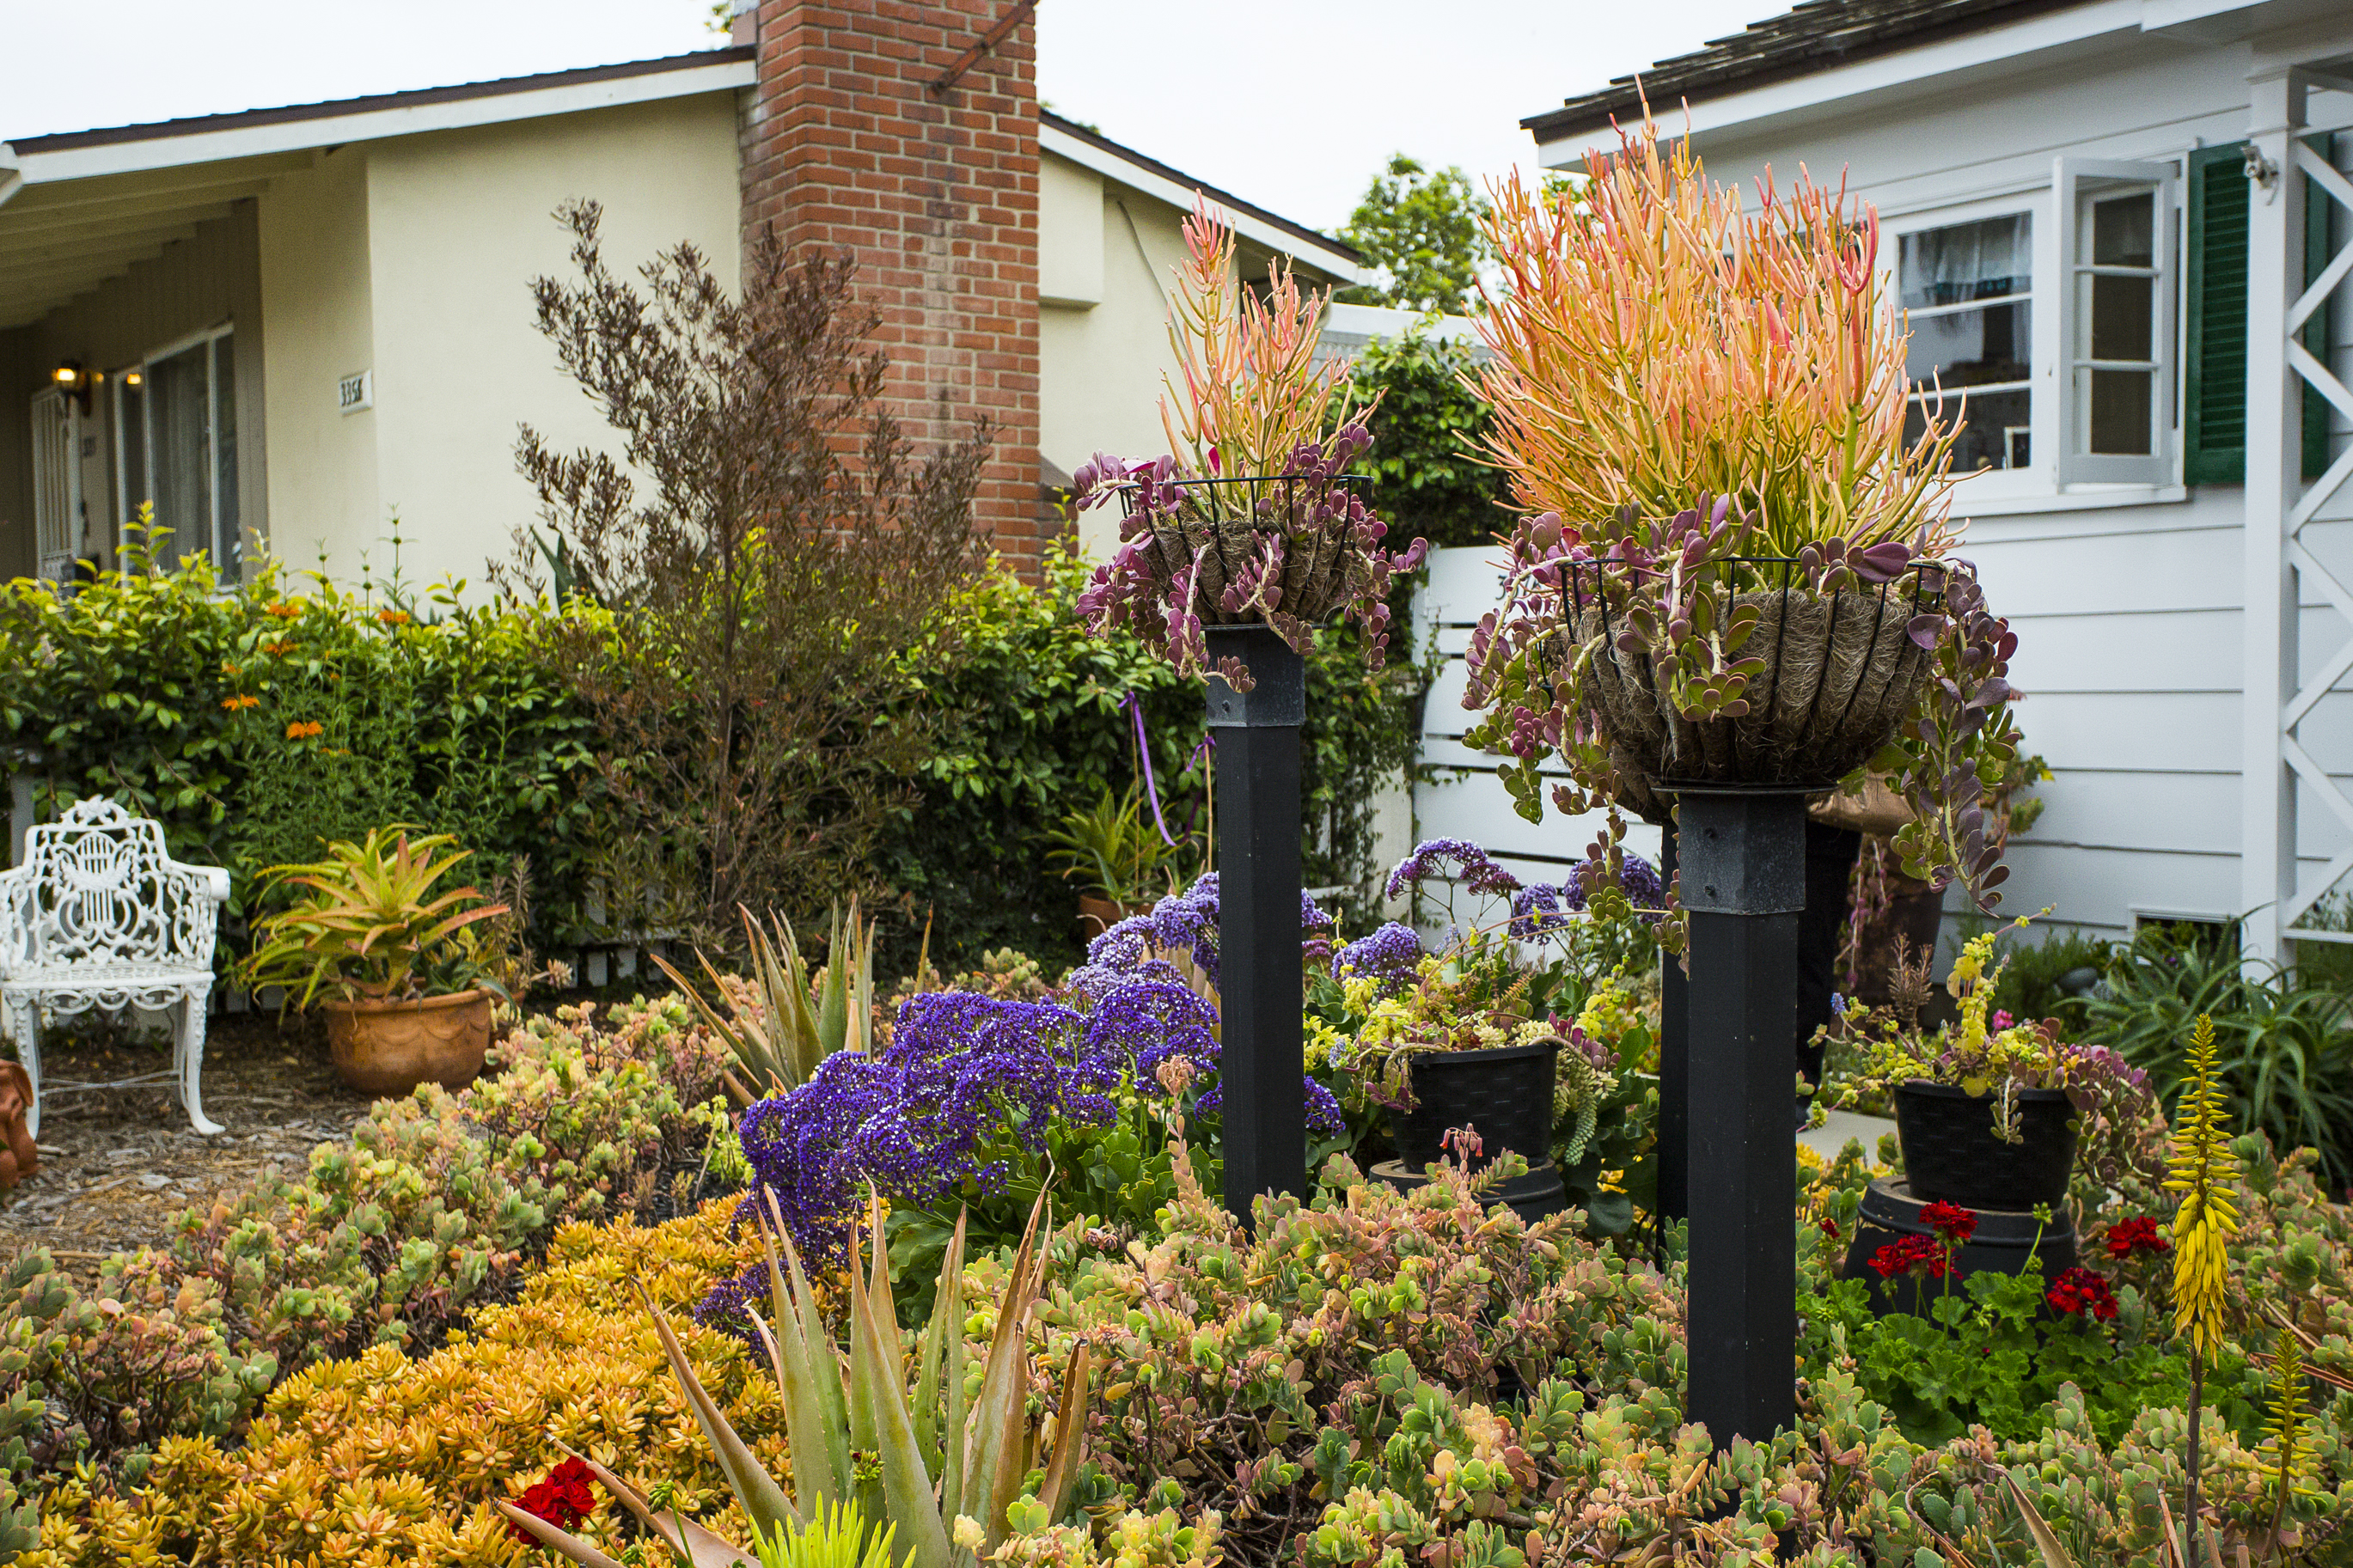 8th Annual Lawn to Garden Tour and Festival